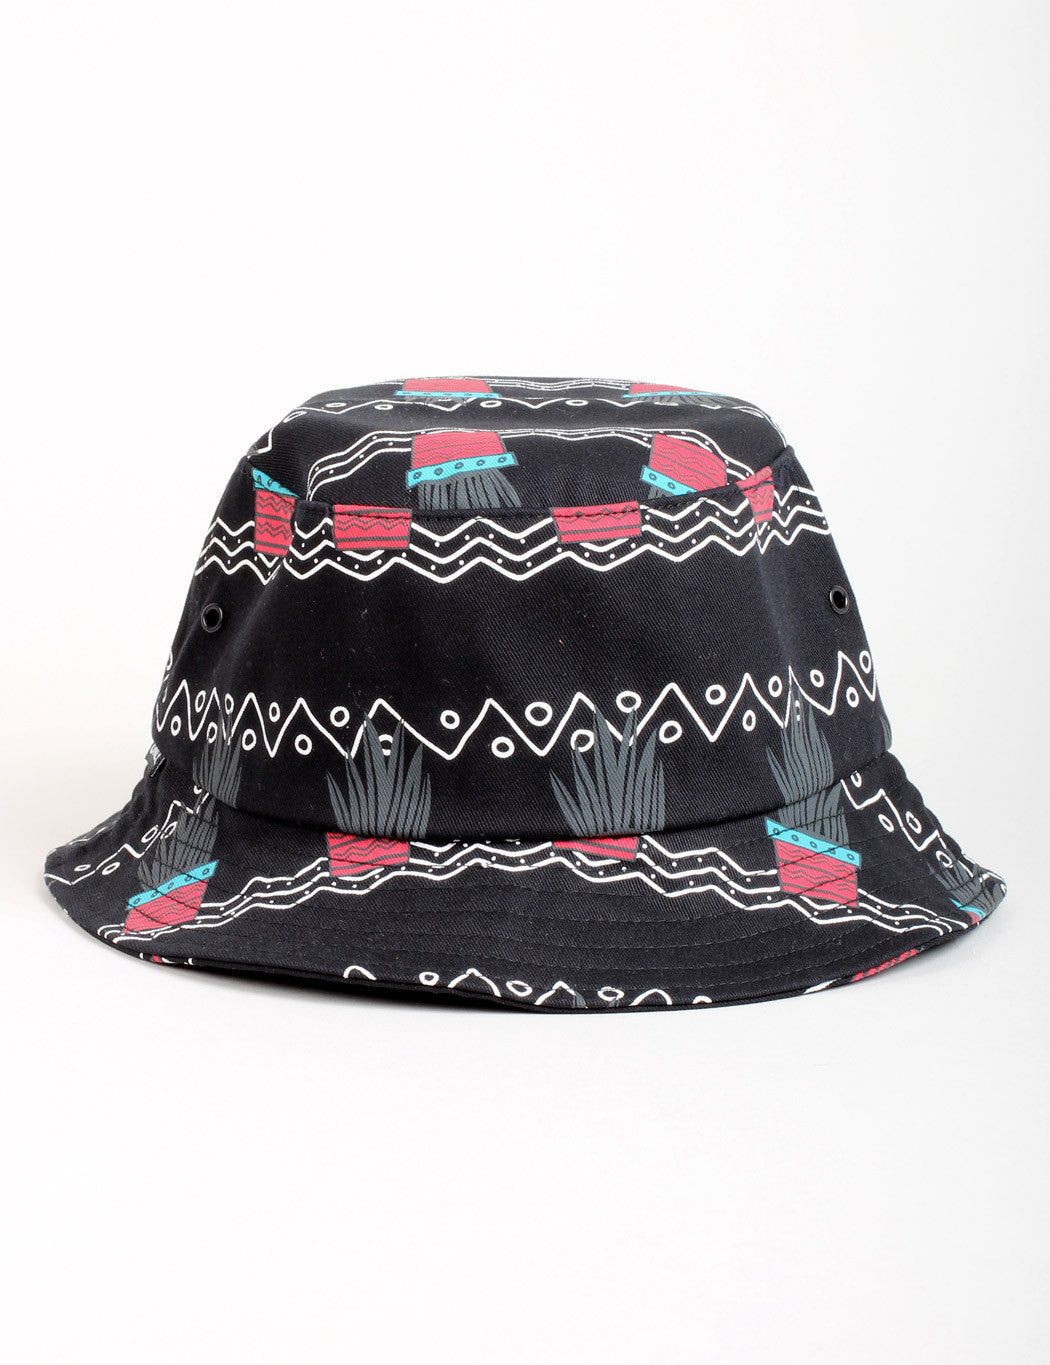 Only NY Planter Bucket Hat - Black